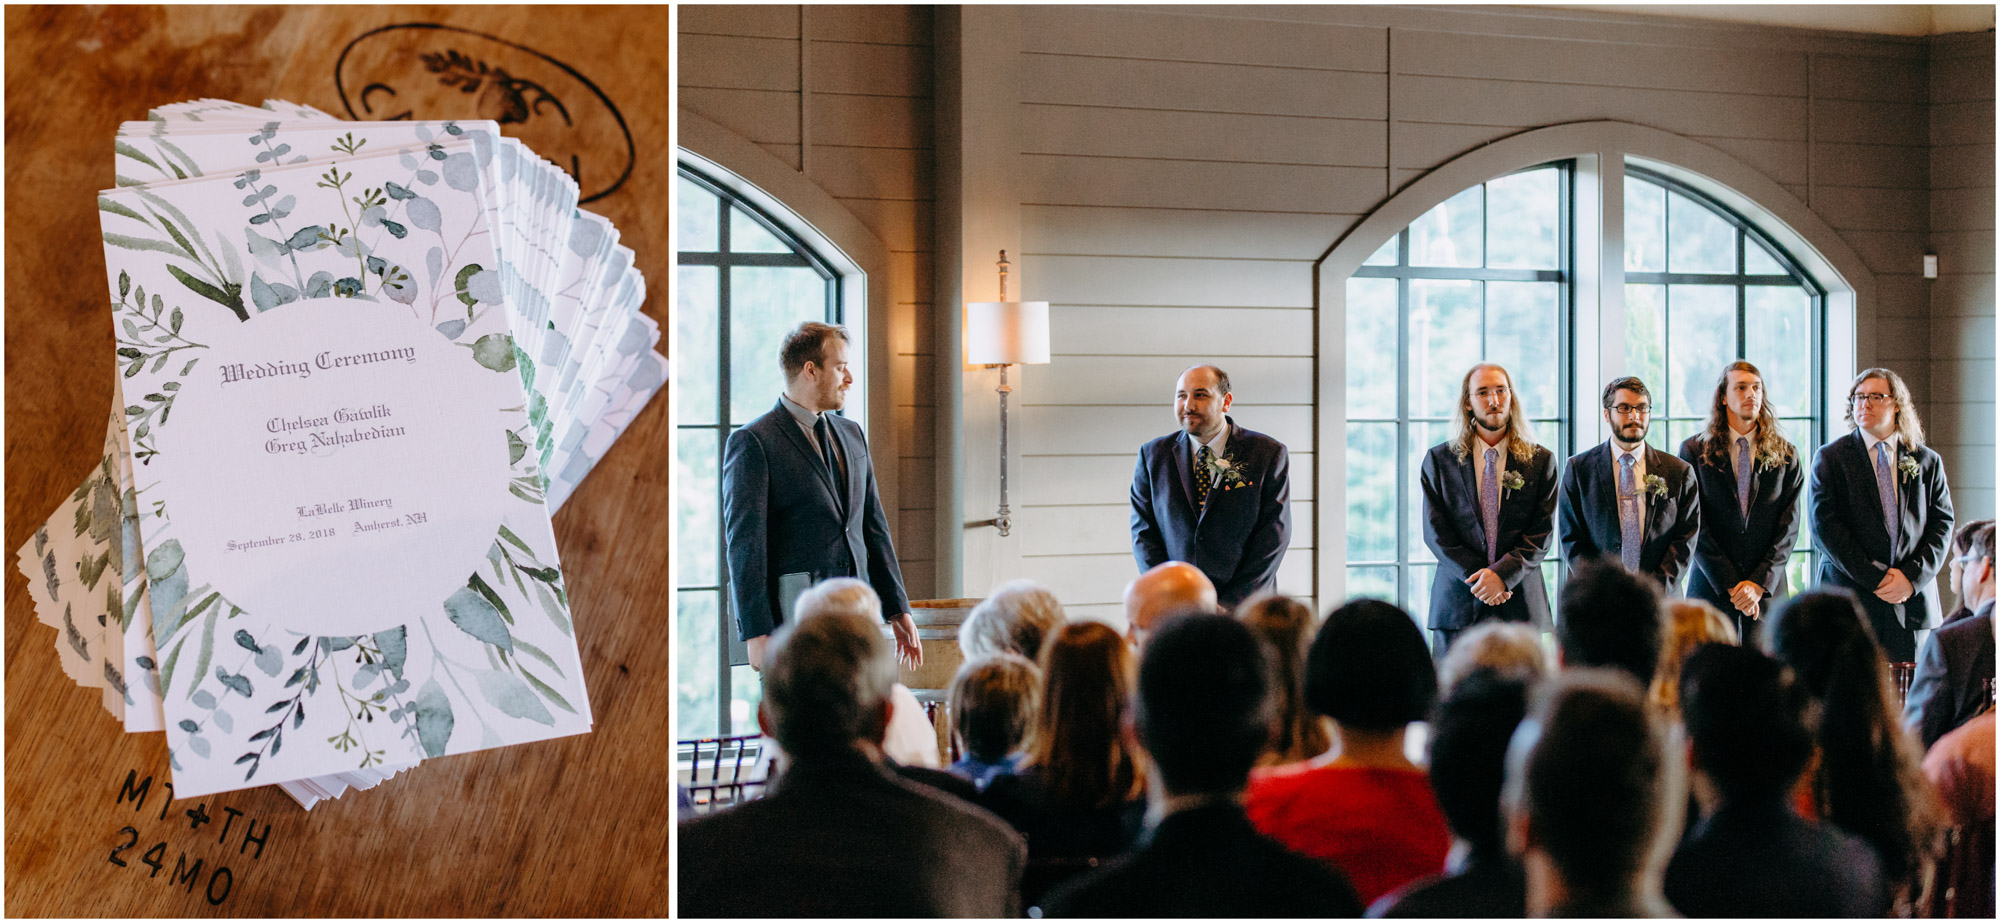 Wedding program and line of groomsmen - by Ashleigh Laureen Photography at LaBelle Winery in Amherst, New Hampshire